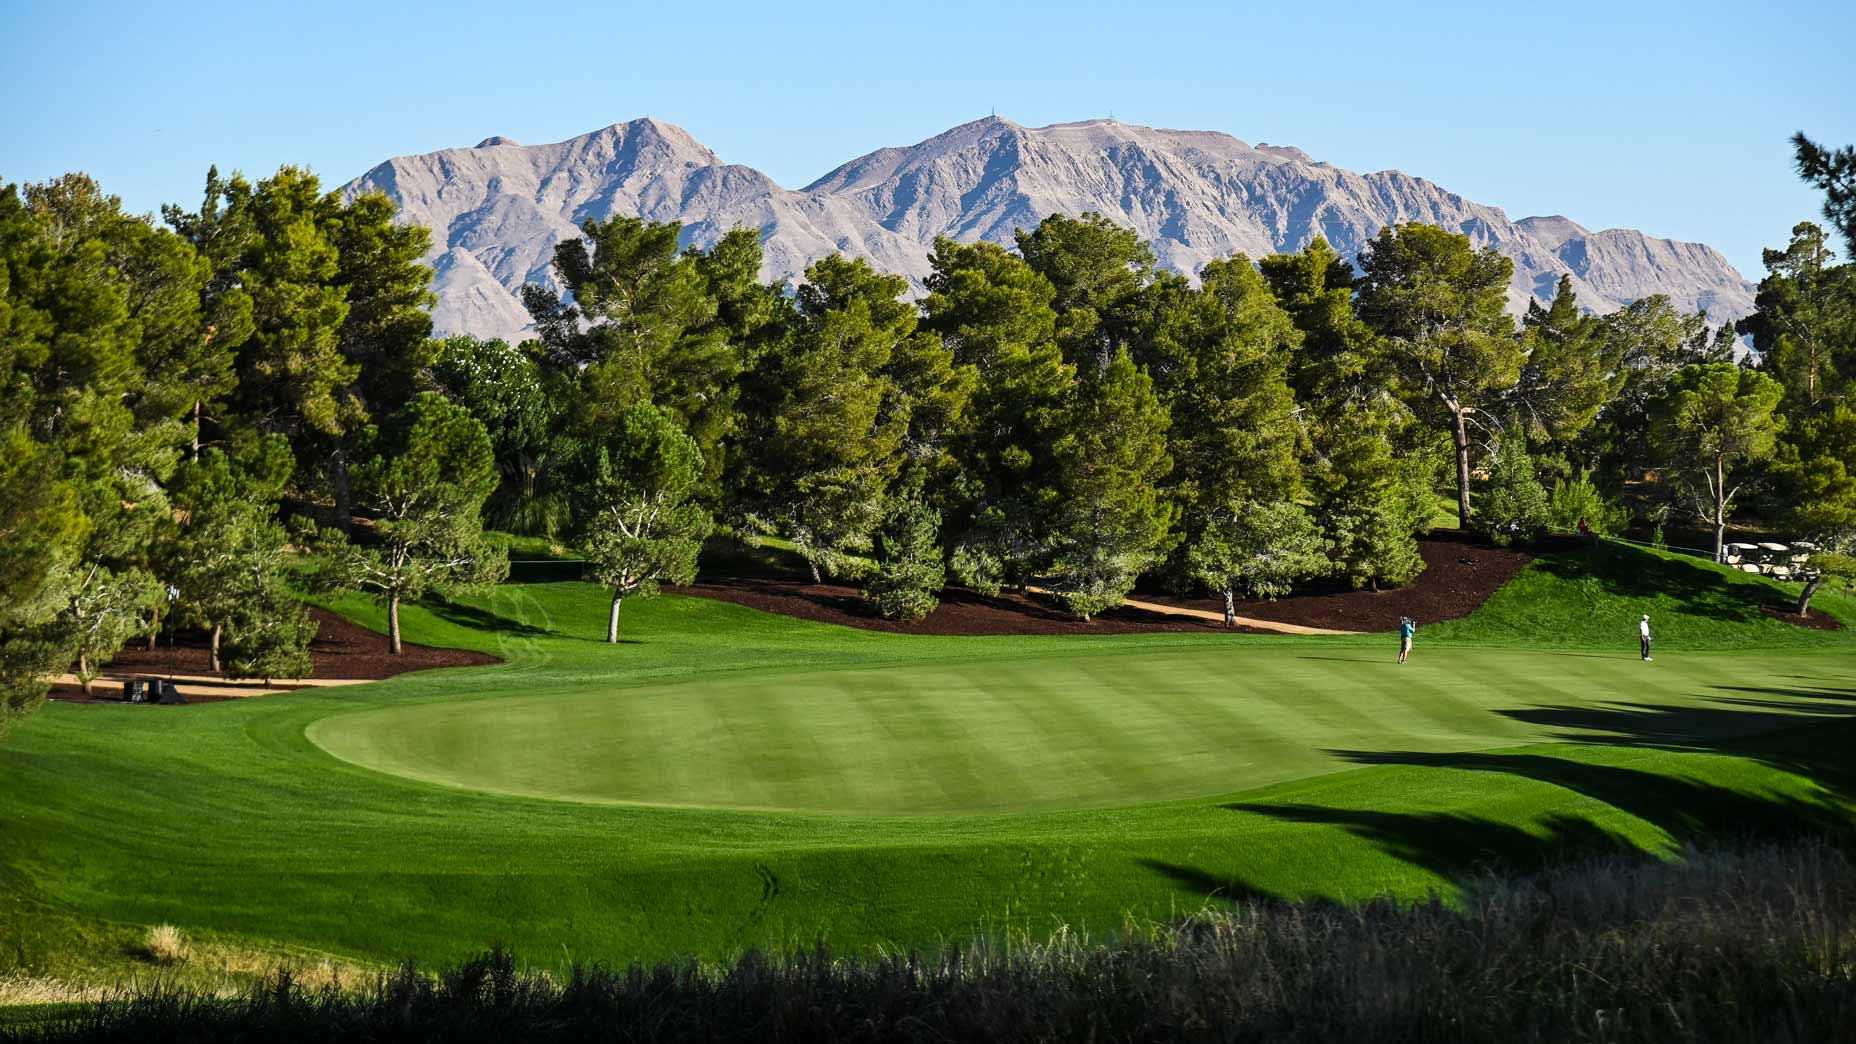 Best golf courses in Nevada, according to GOLF Magazine's ...